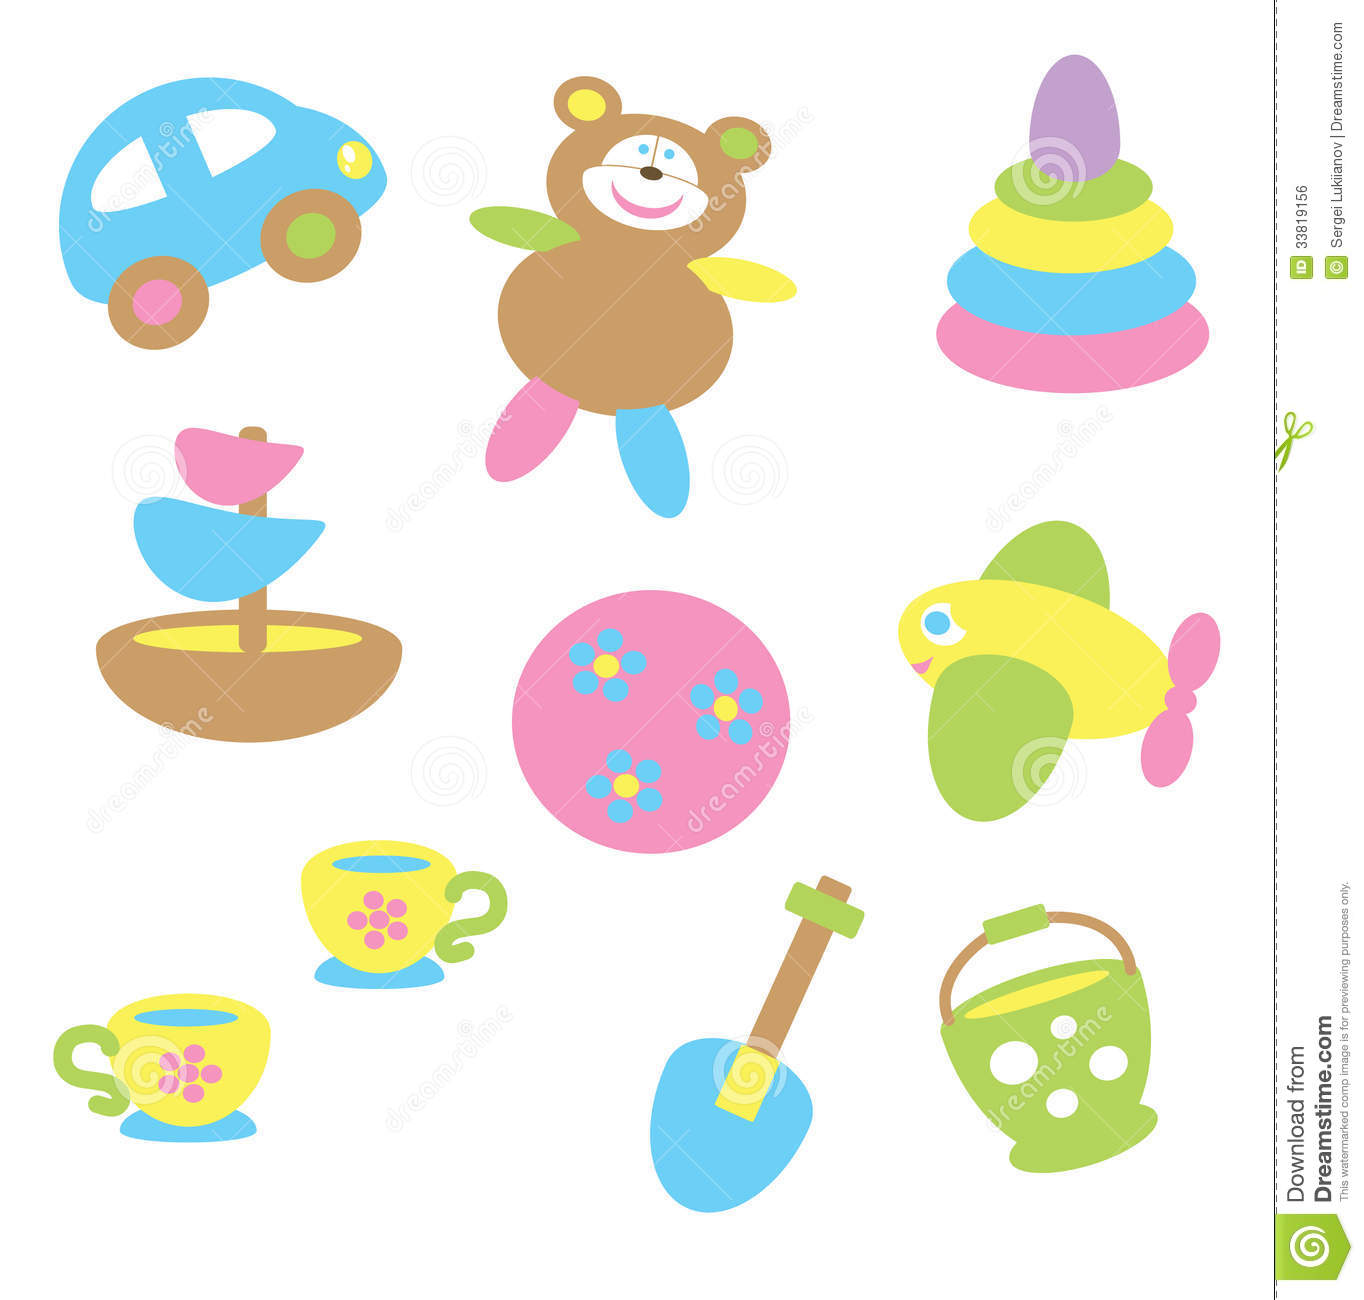 Pastel Tones Clipart 20 Free Cliparts Download Images On